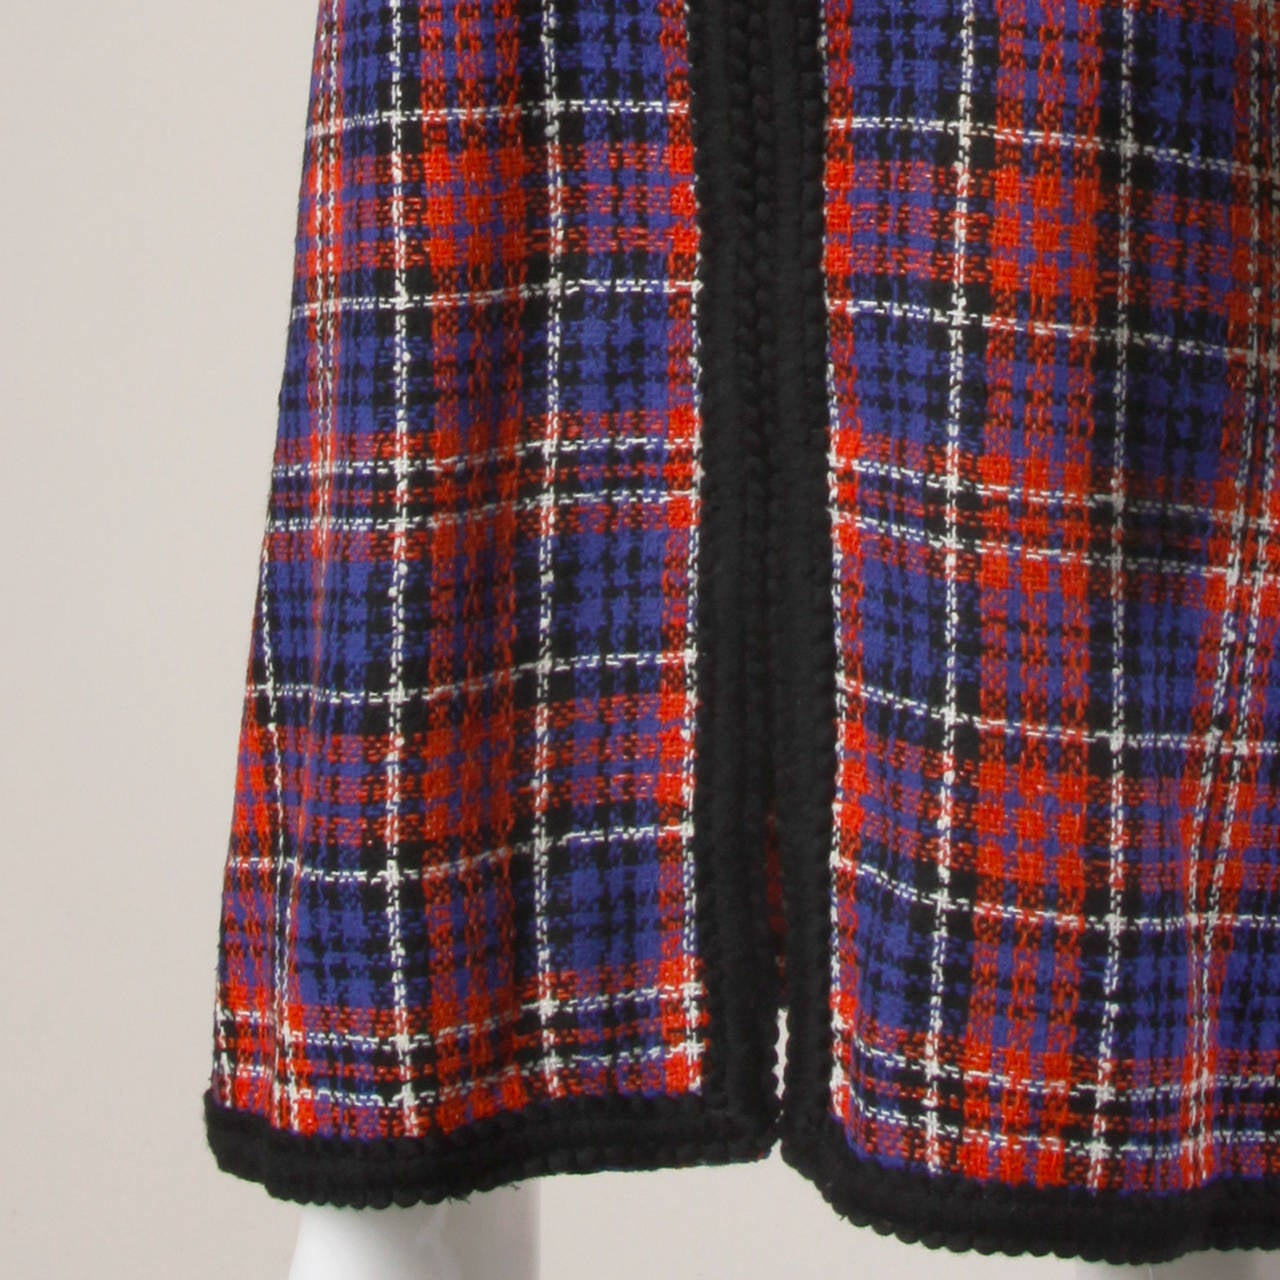 Oscar de la Renta Vintage 1960s Plaid Dress For Sale 3